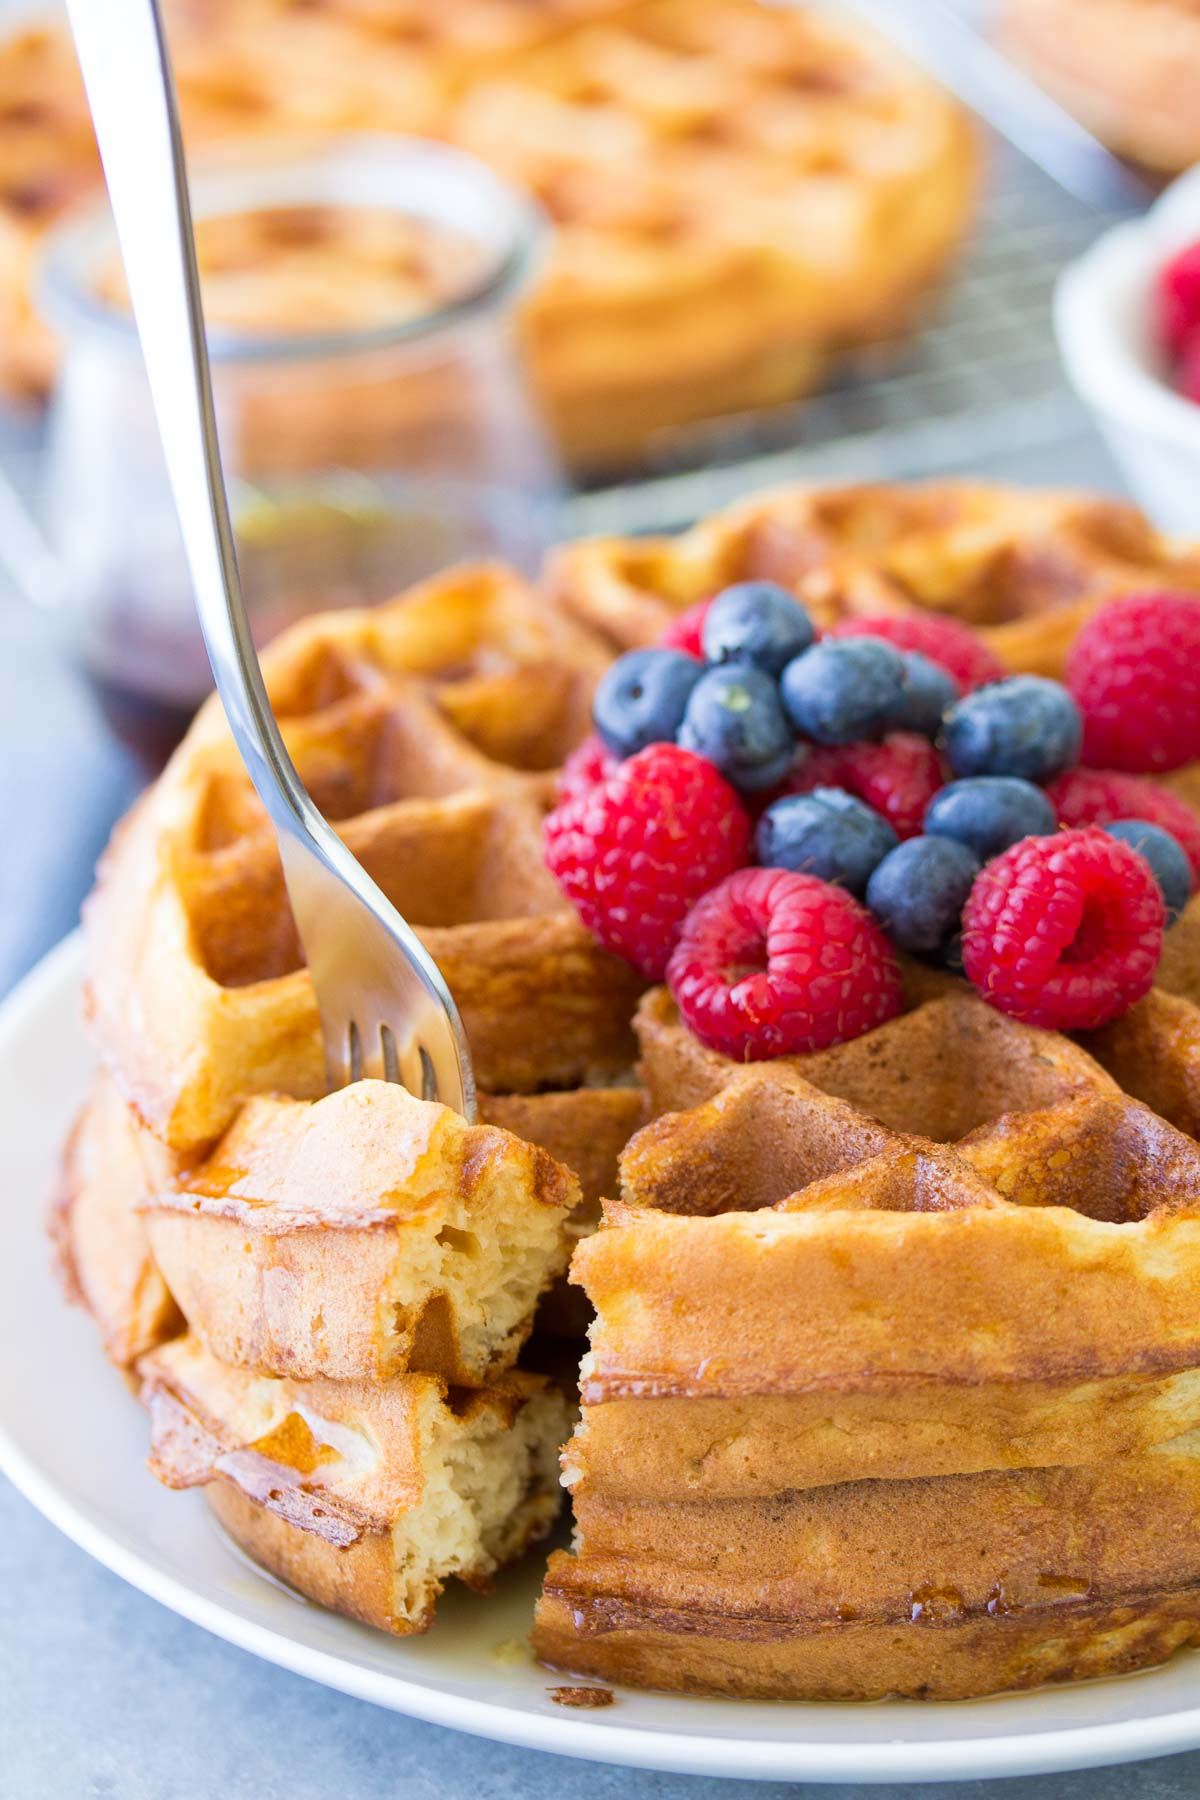 bite of waffle on a fork, showing fluffy waffle insides